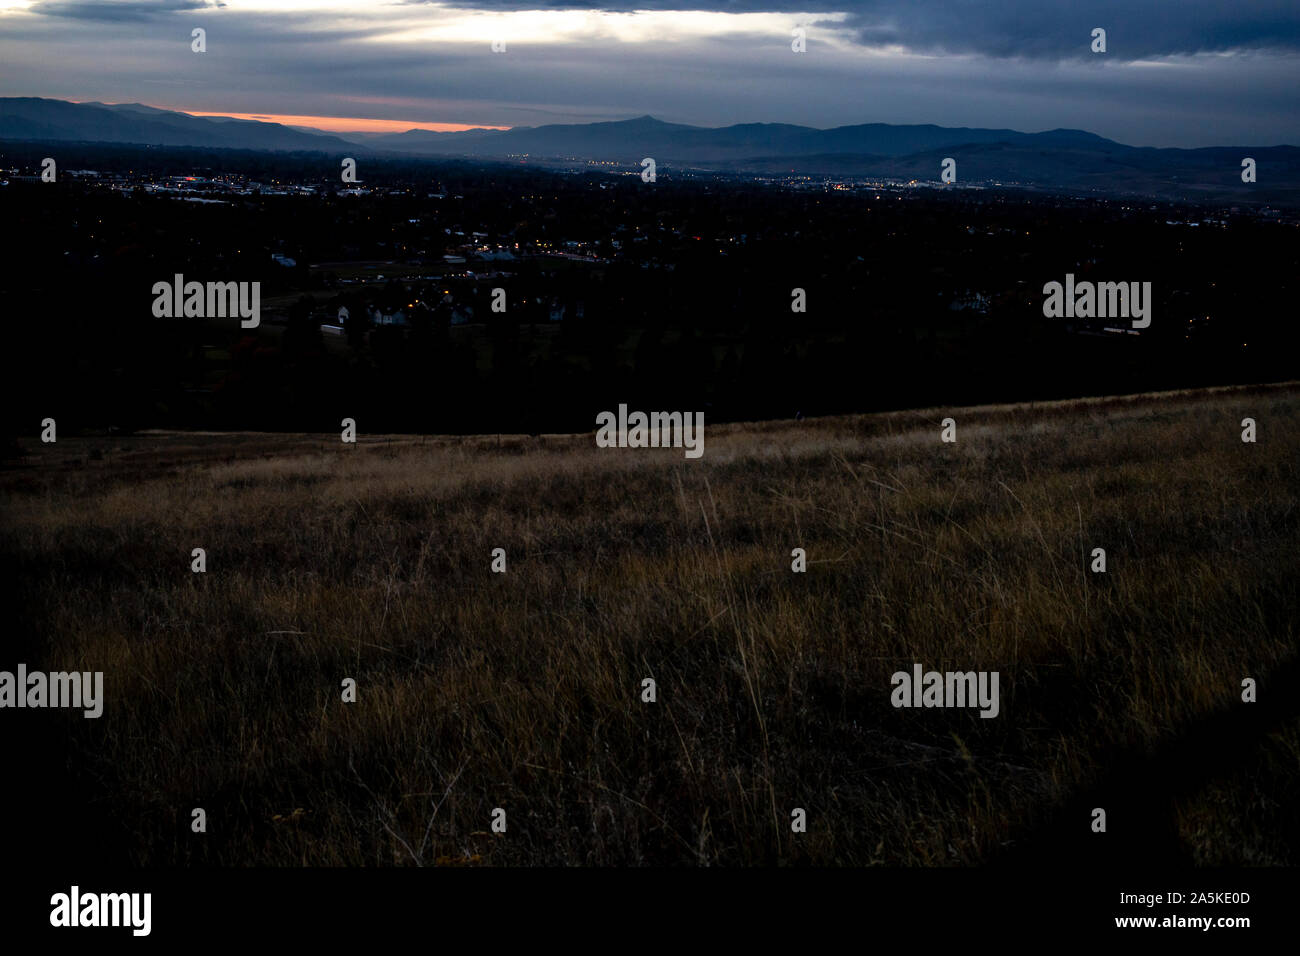 Missoula Montana Fall High Resolution Stock Photography And Images Alamy